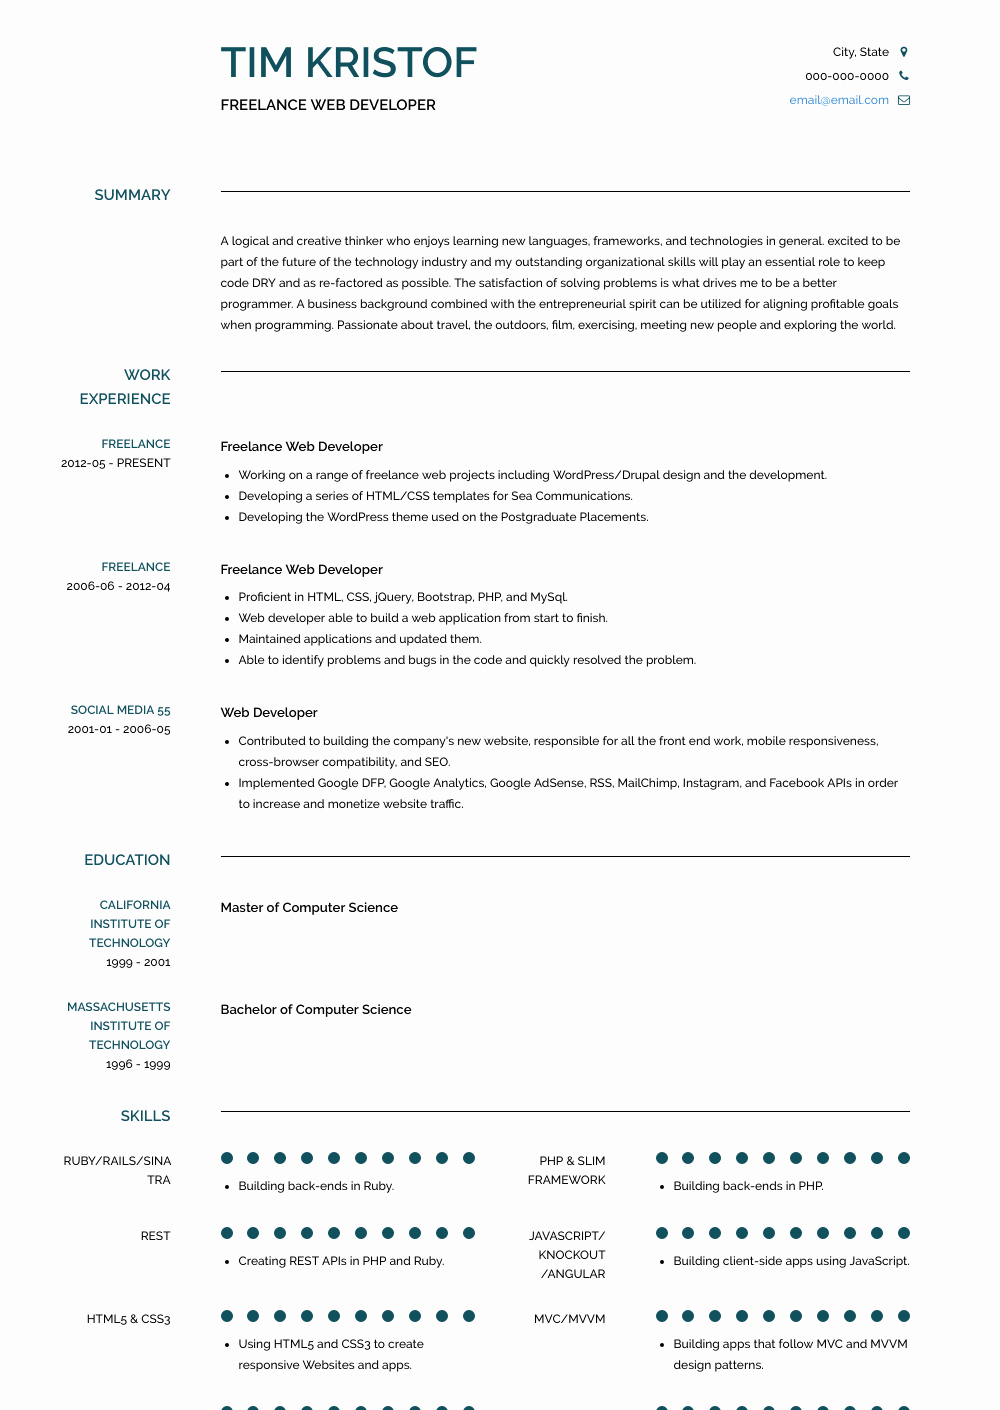 Web Developer Resume Sample Best Of Freelance Web Developer Resume Samples & Templates